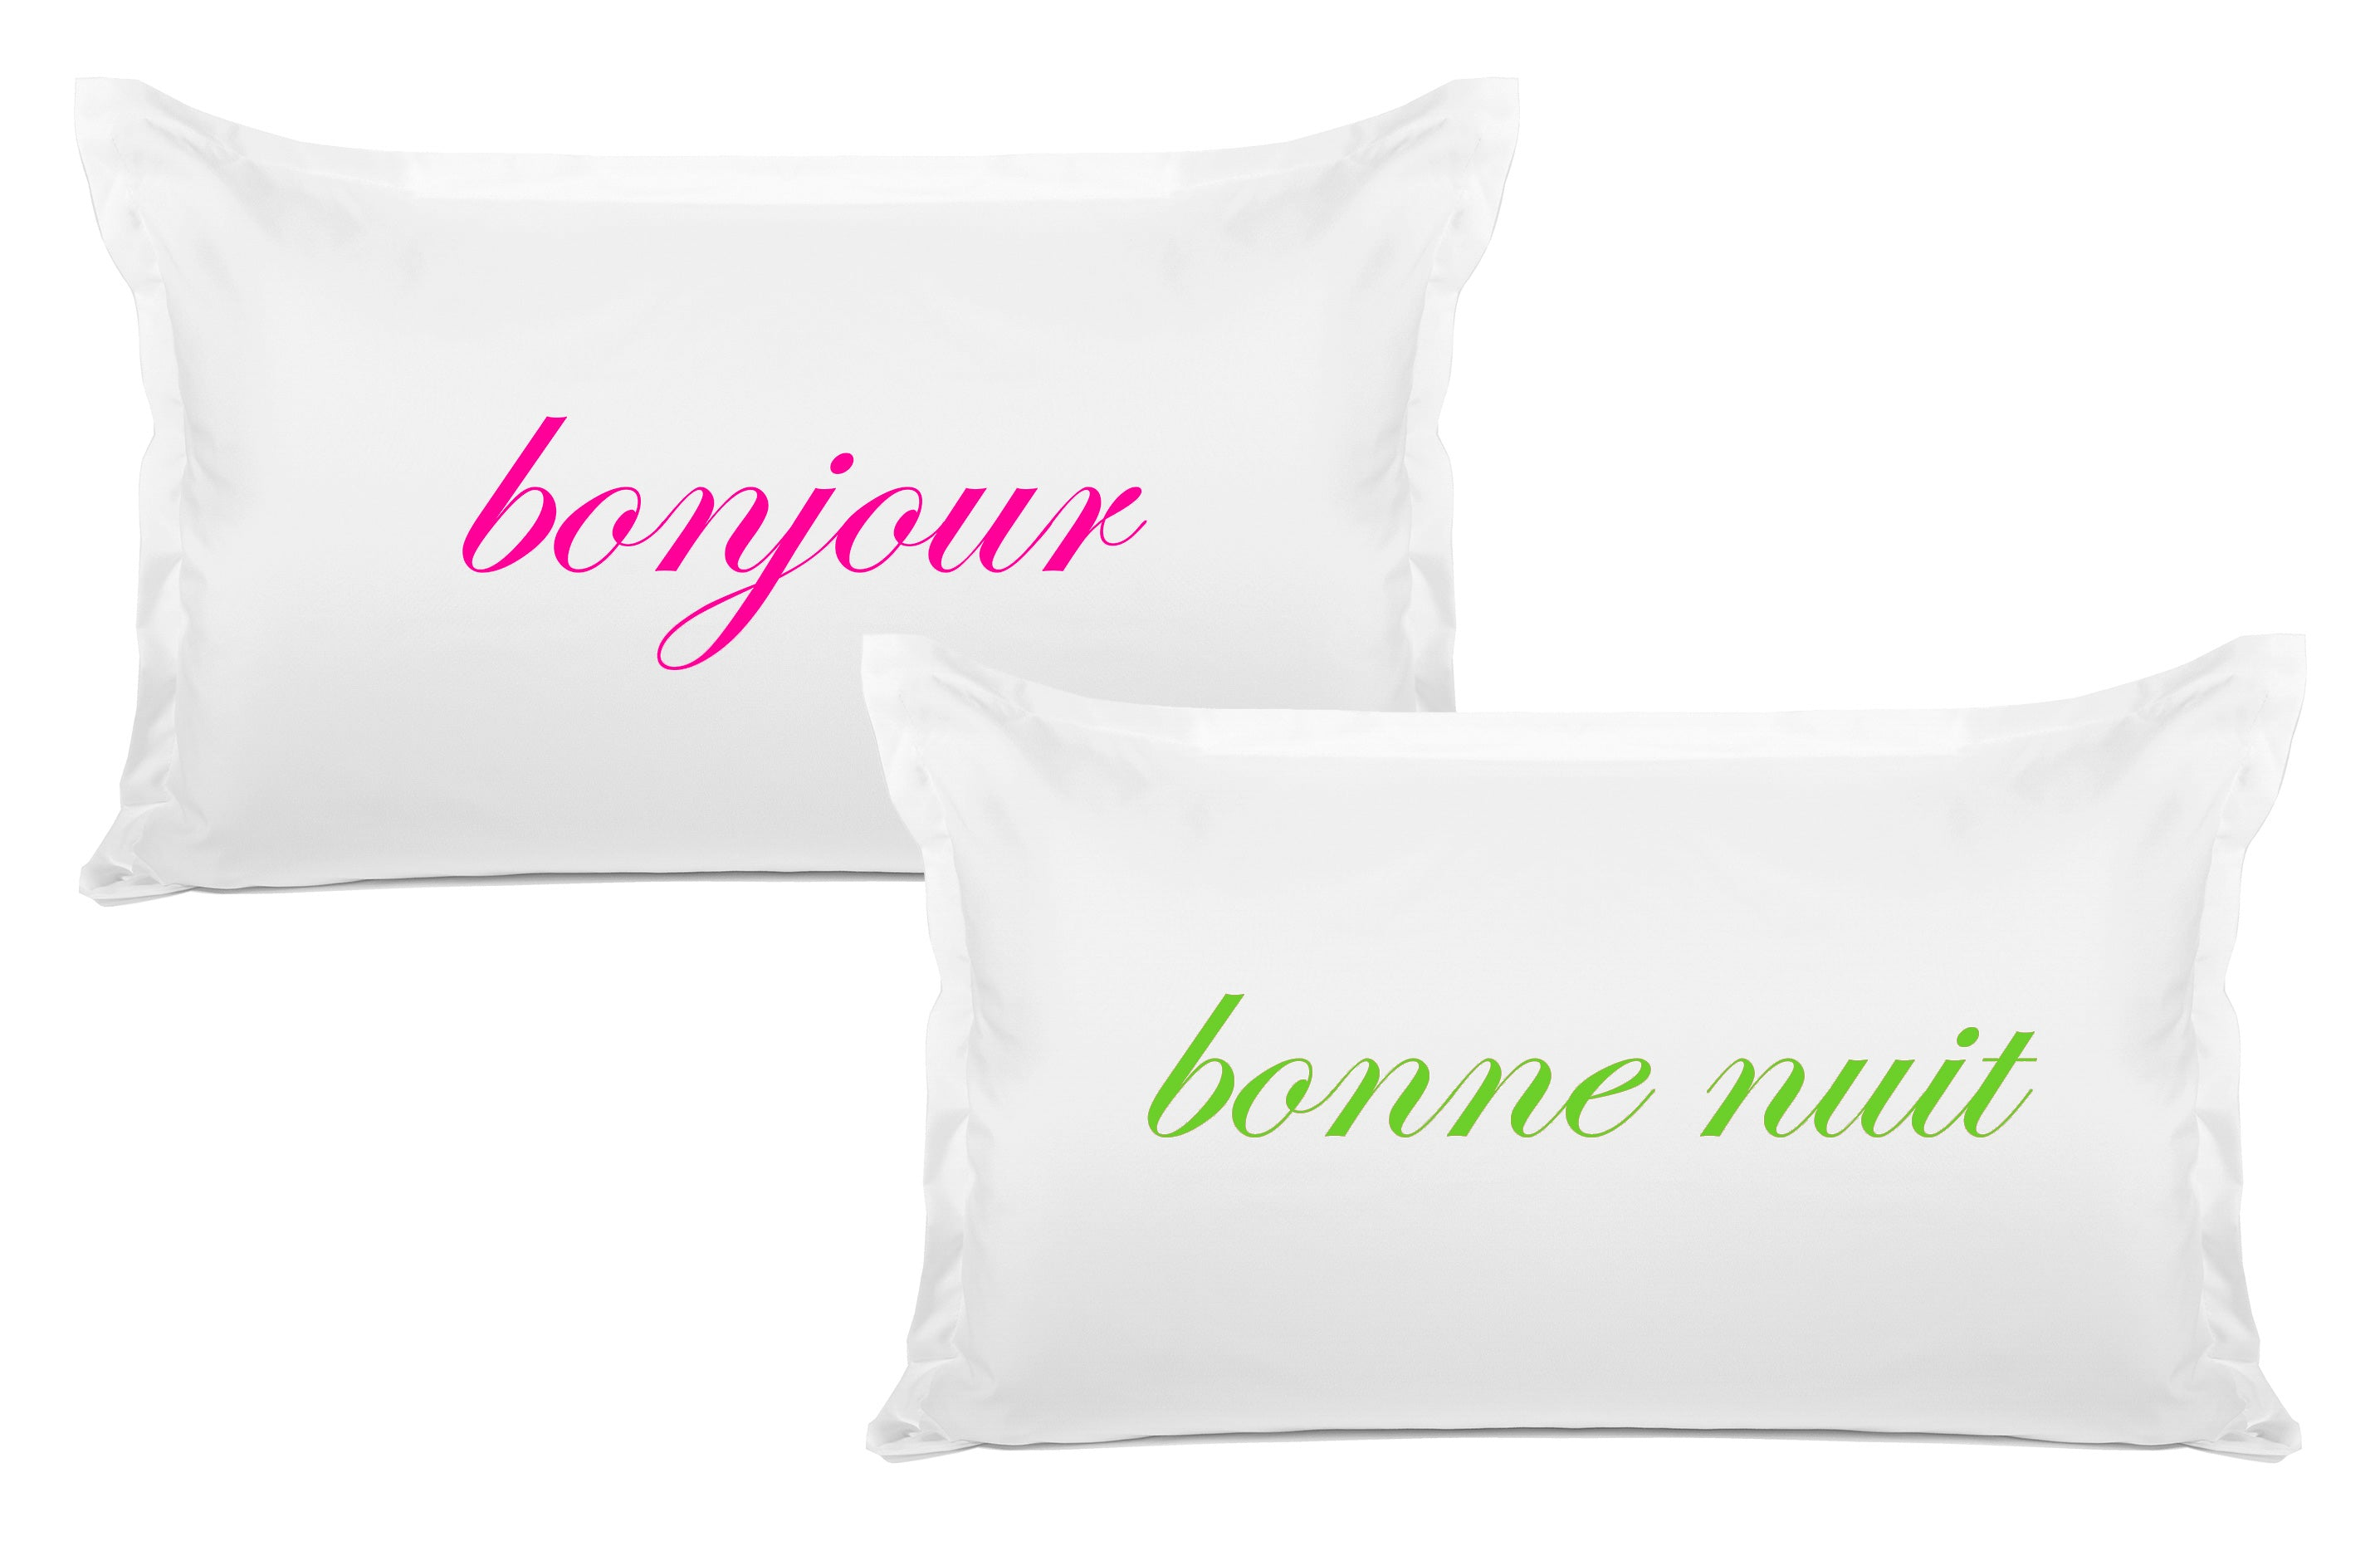 Bonjour, Bonne Nuit - His & Hers Pillowcase Collection